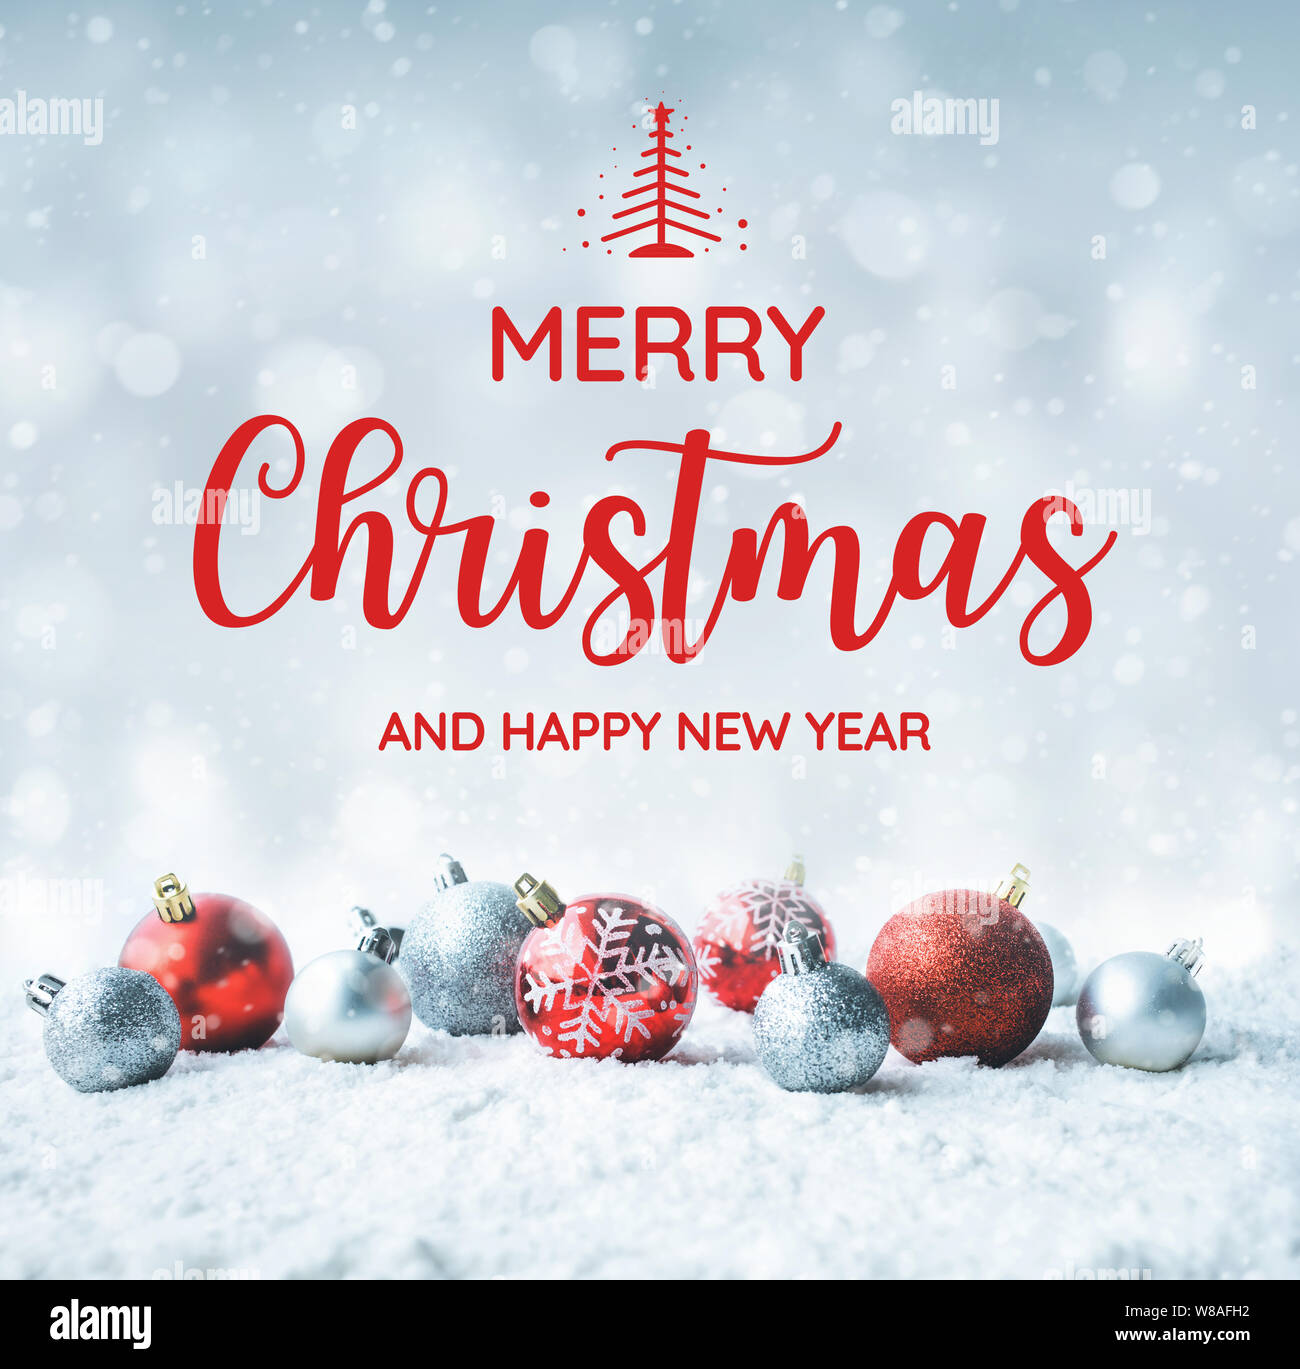 2021 Happy Merry Christmas And Happy New Year Wallpaper Lake Up In Mountain Merry Christmas High Resolution Stock Photography And Images Alamy